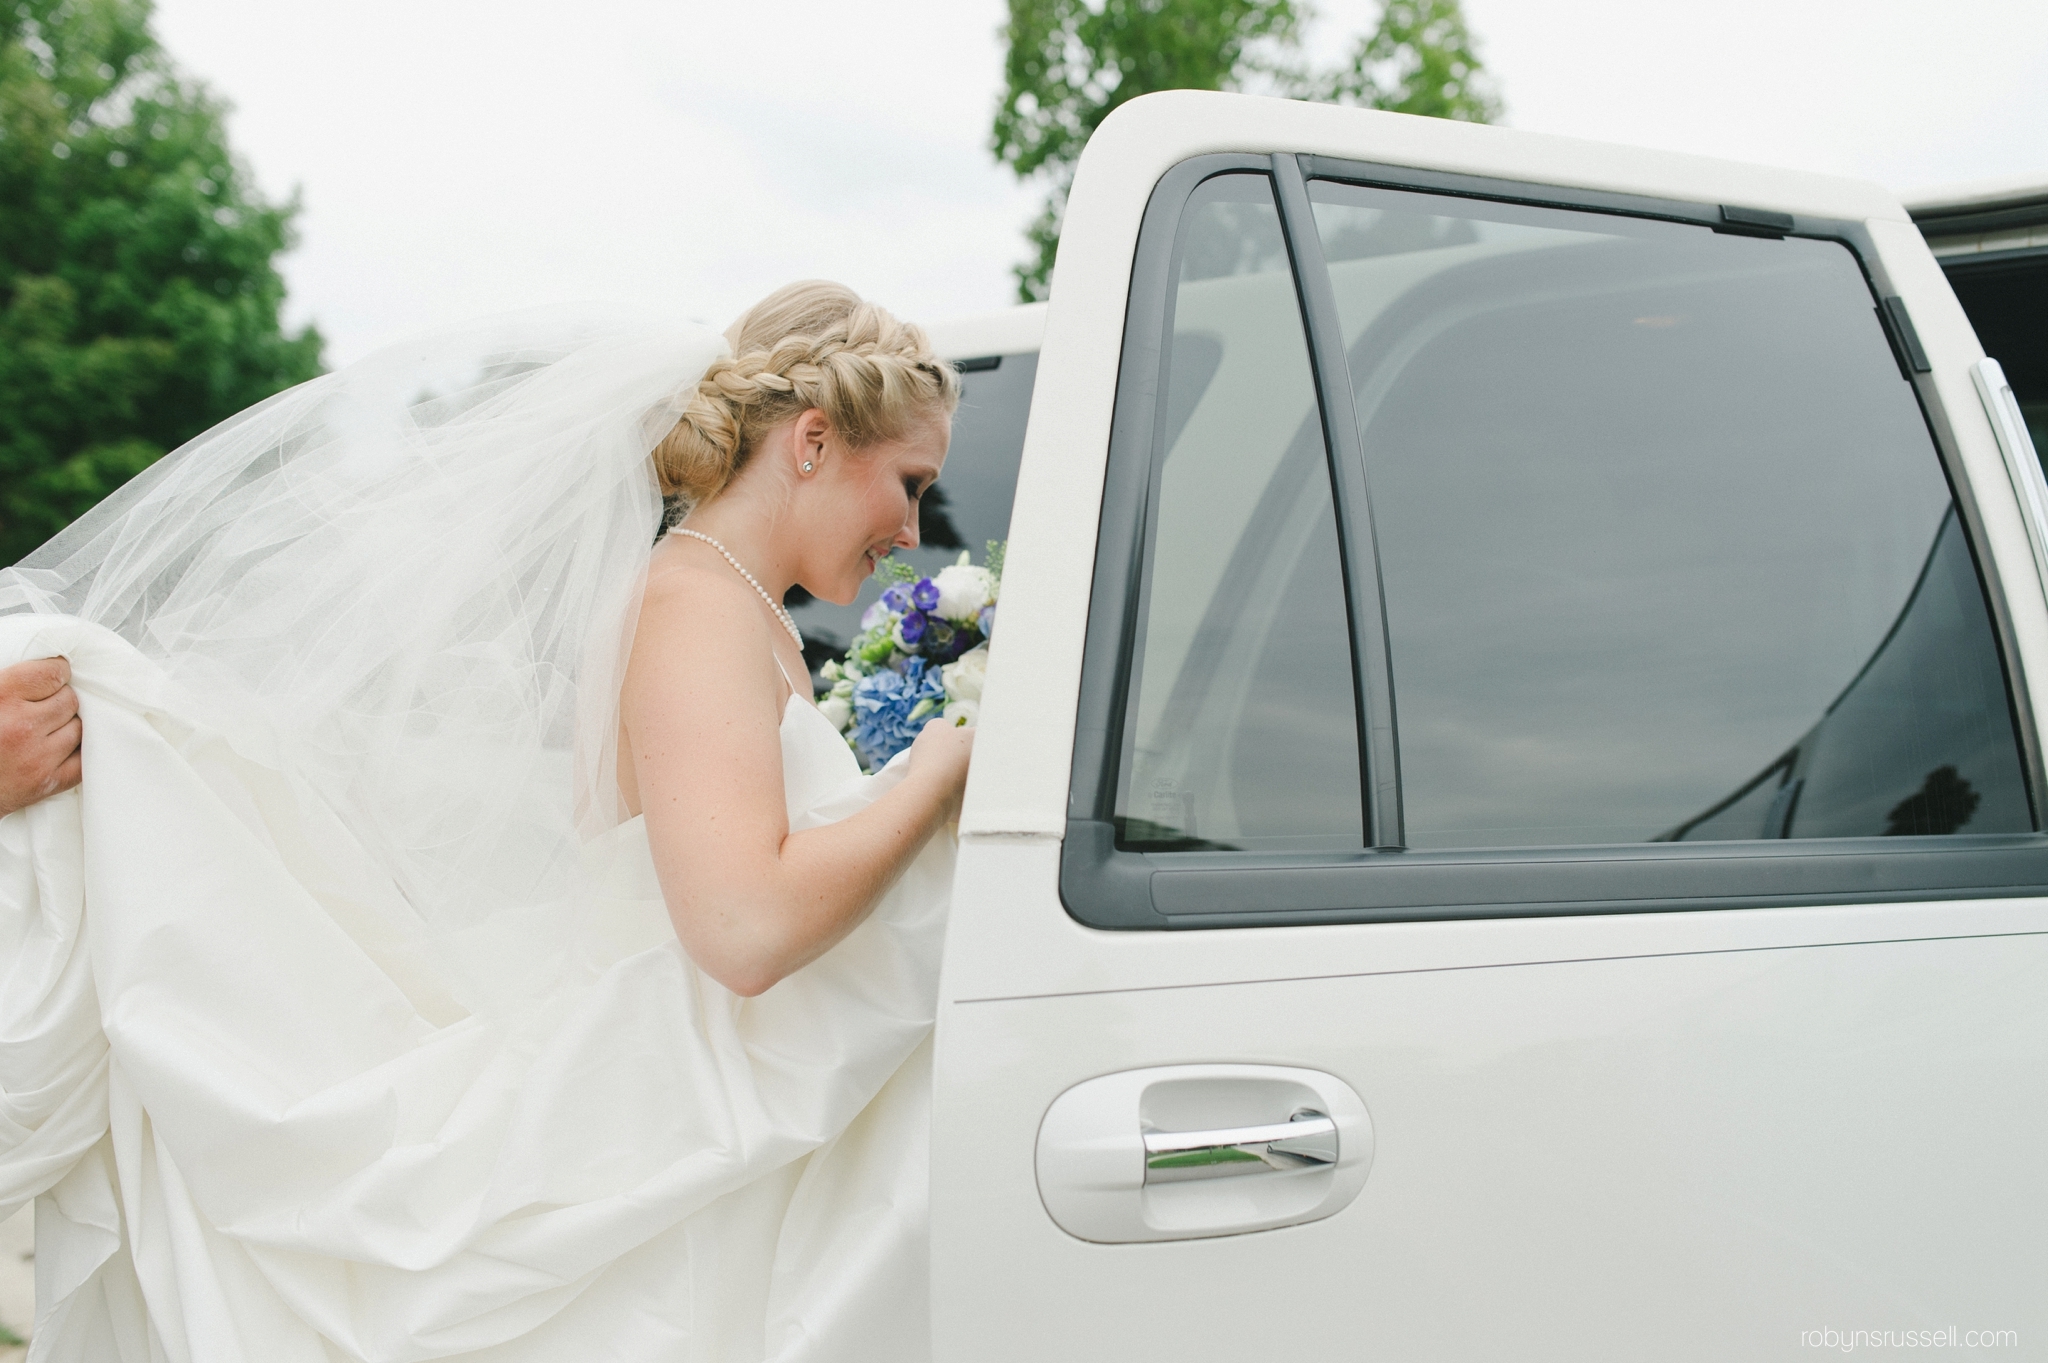 0111-bride-getting-in-limo.jpg